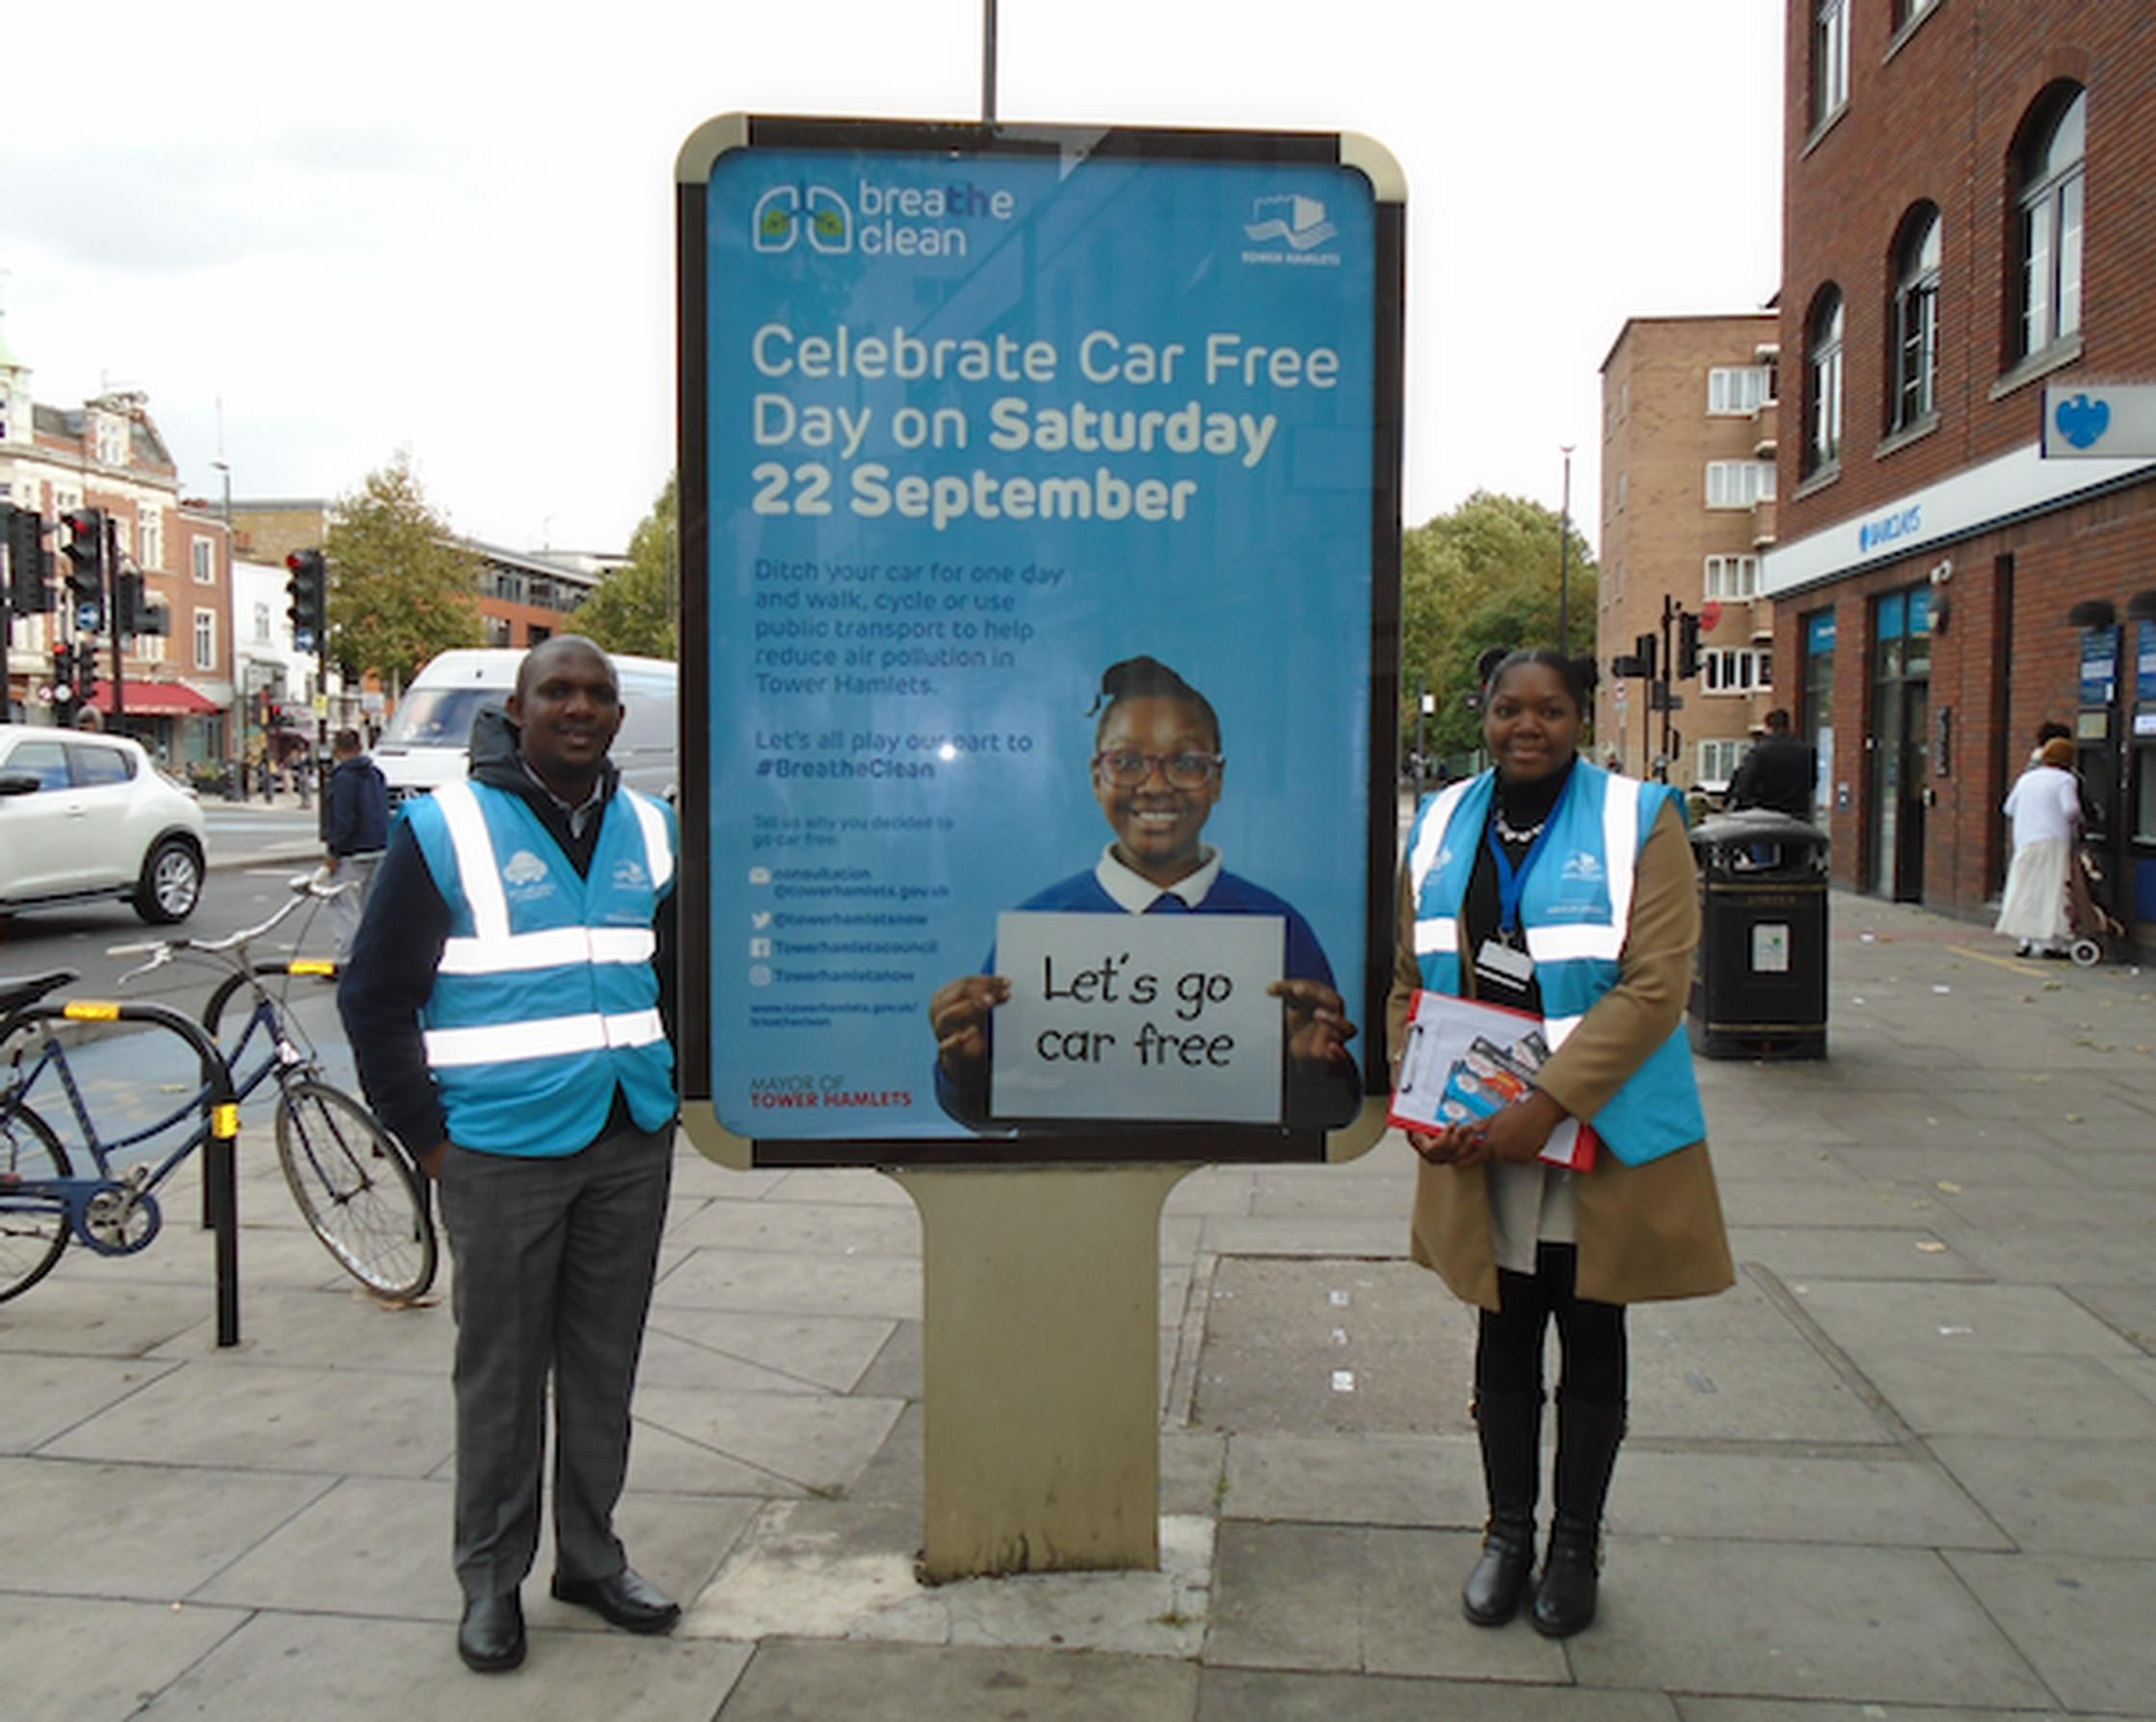 Tower Hamlets marked Car Free Day on 22 September